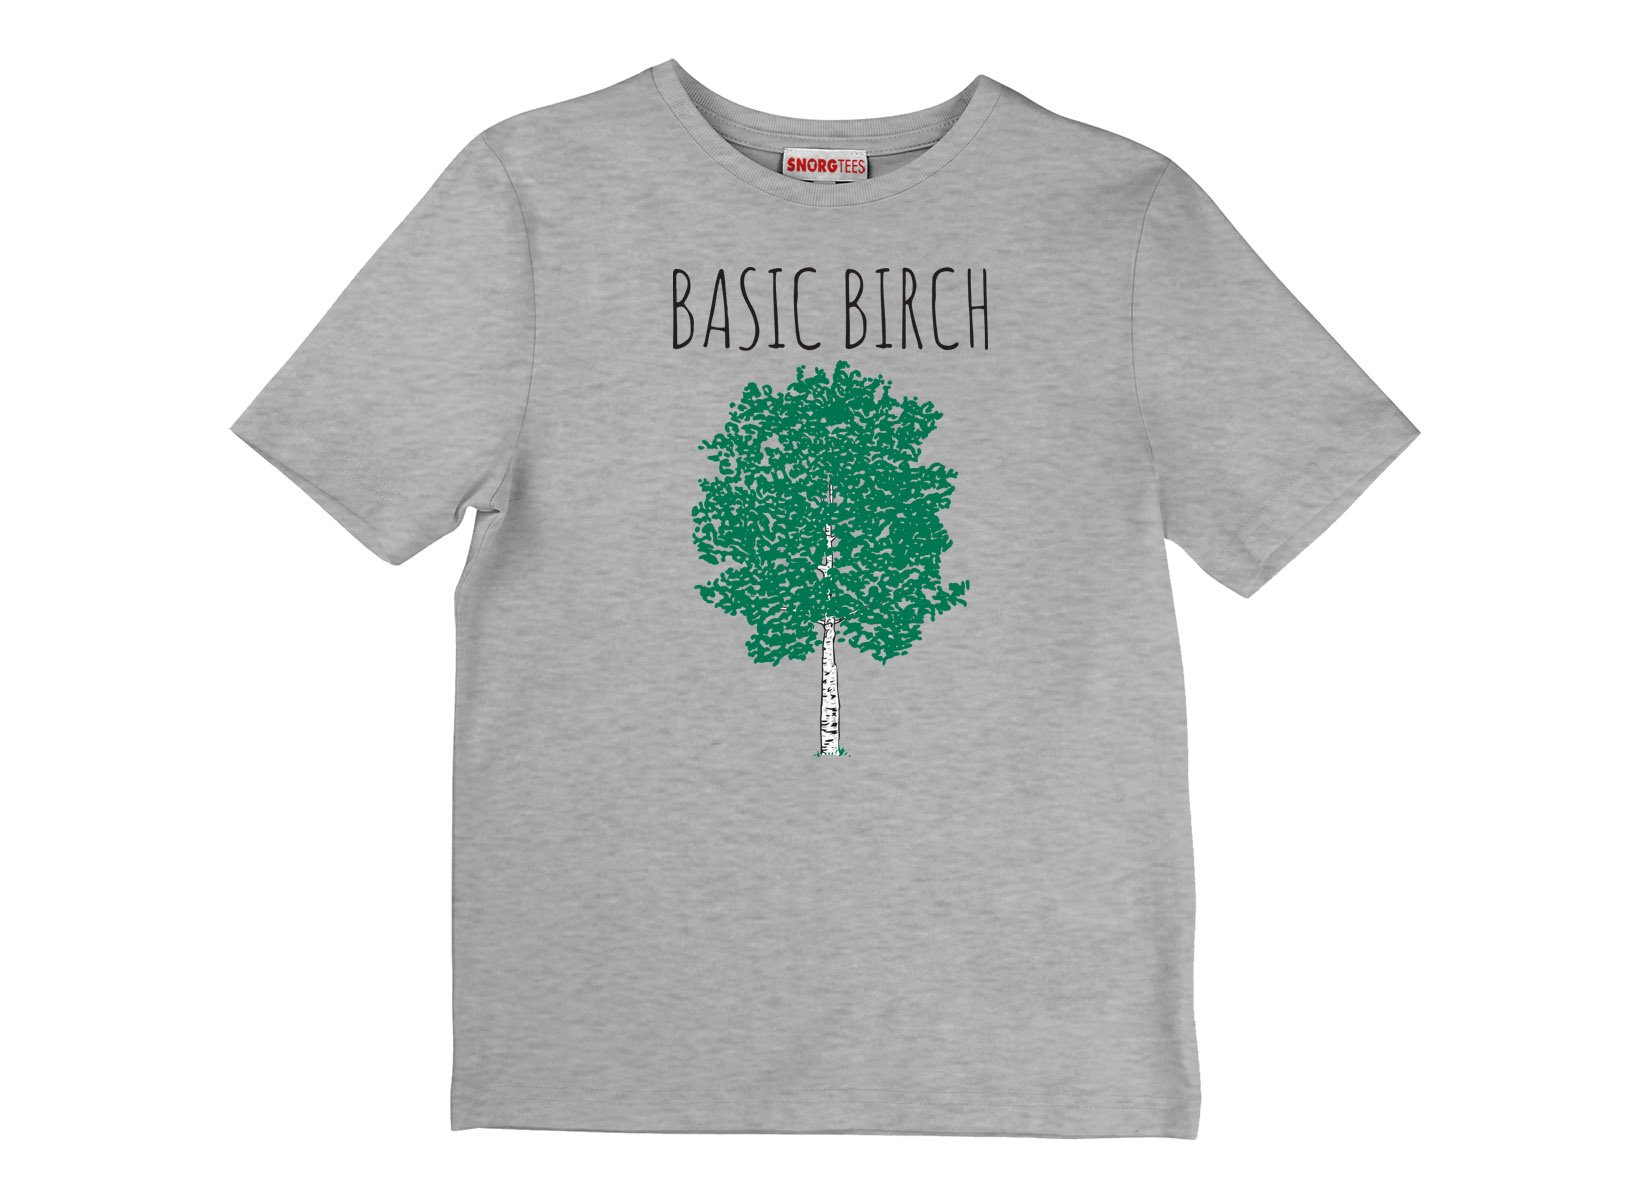 Basic Birch on Kids T-Shirt